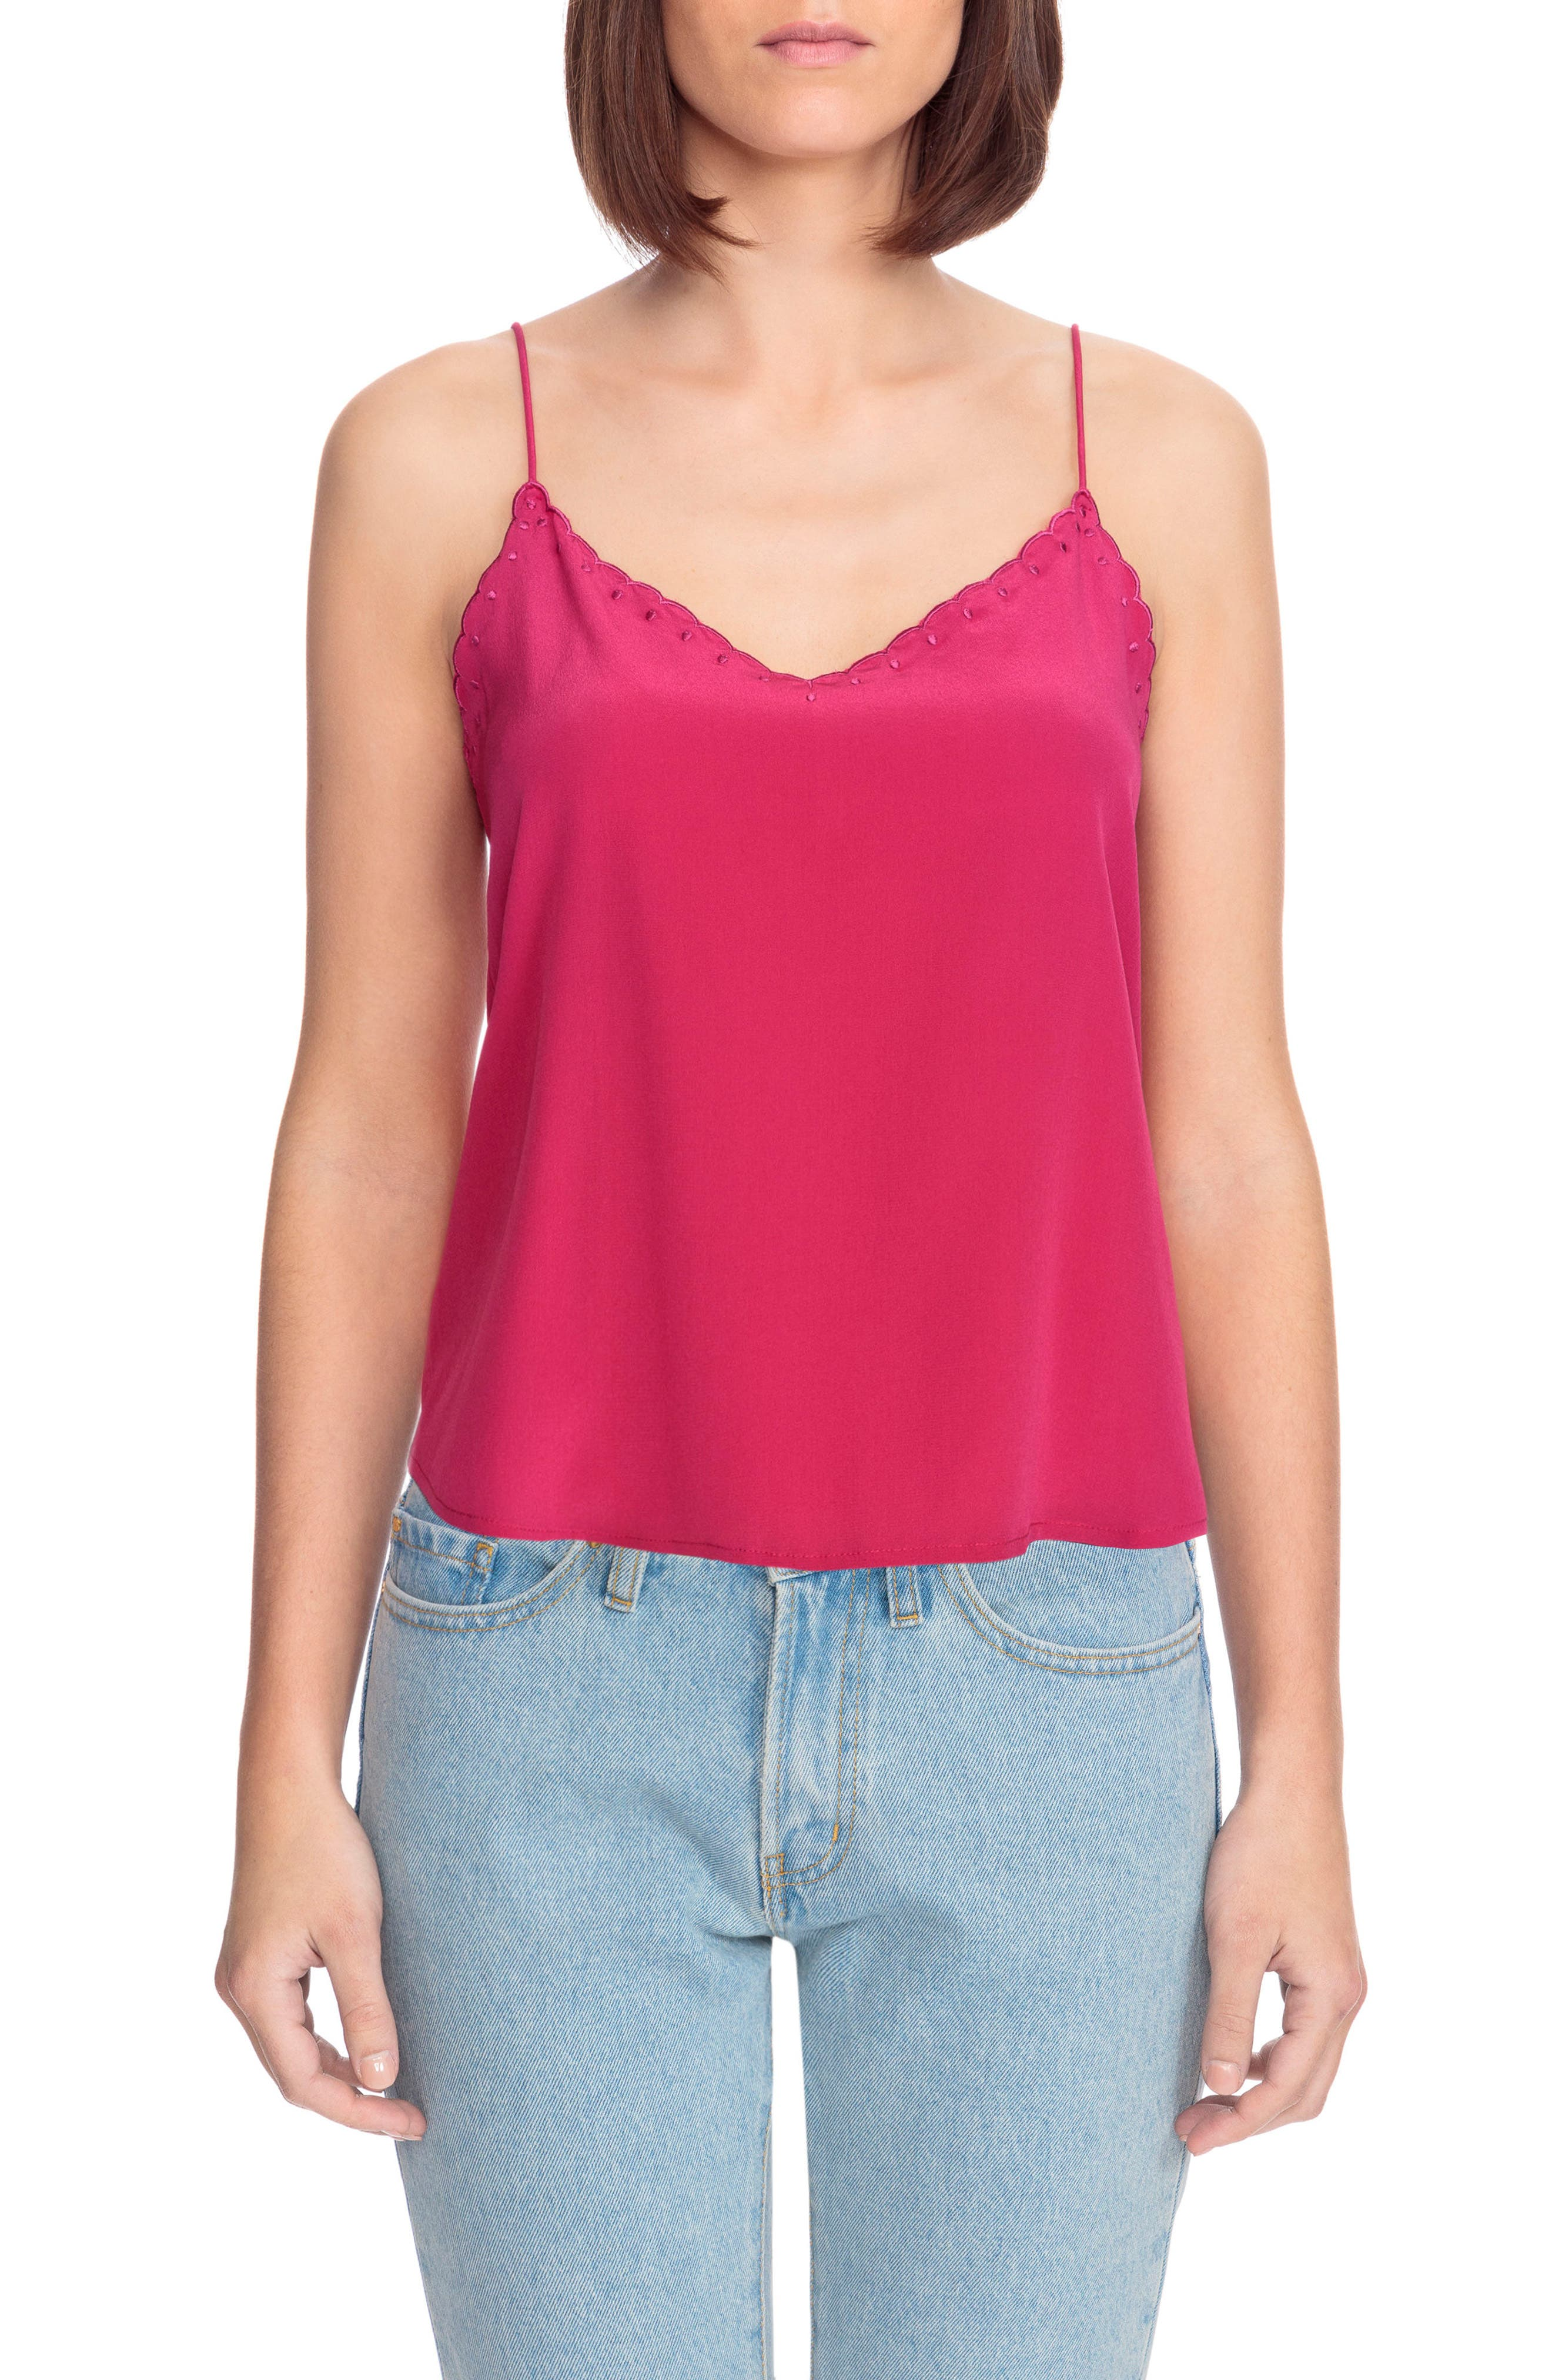 Athenee Scalloped Silk Camisole,                         Main,                         color, Bright Pink